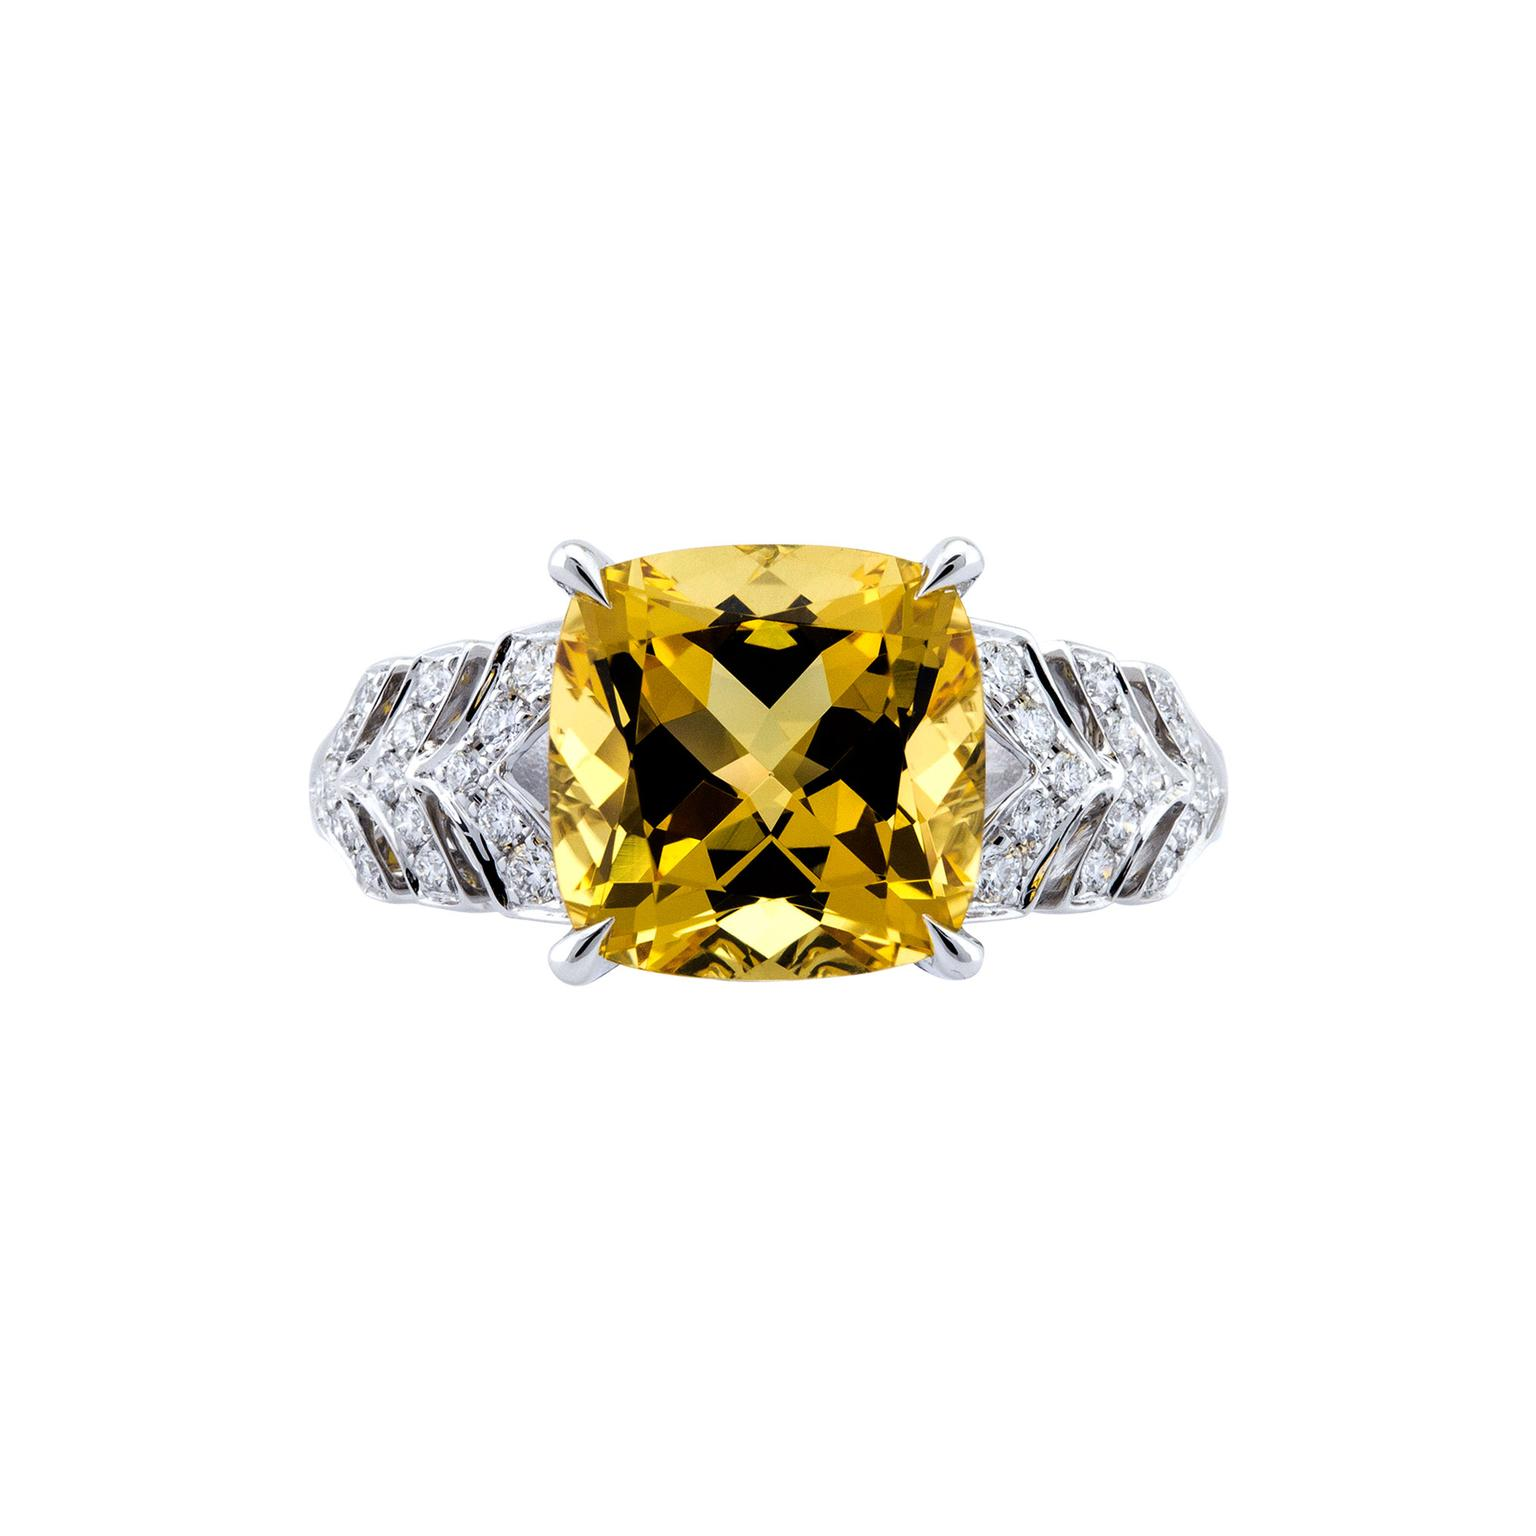 Boodles Prism yellow beryl ring with diamonds